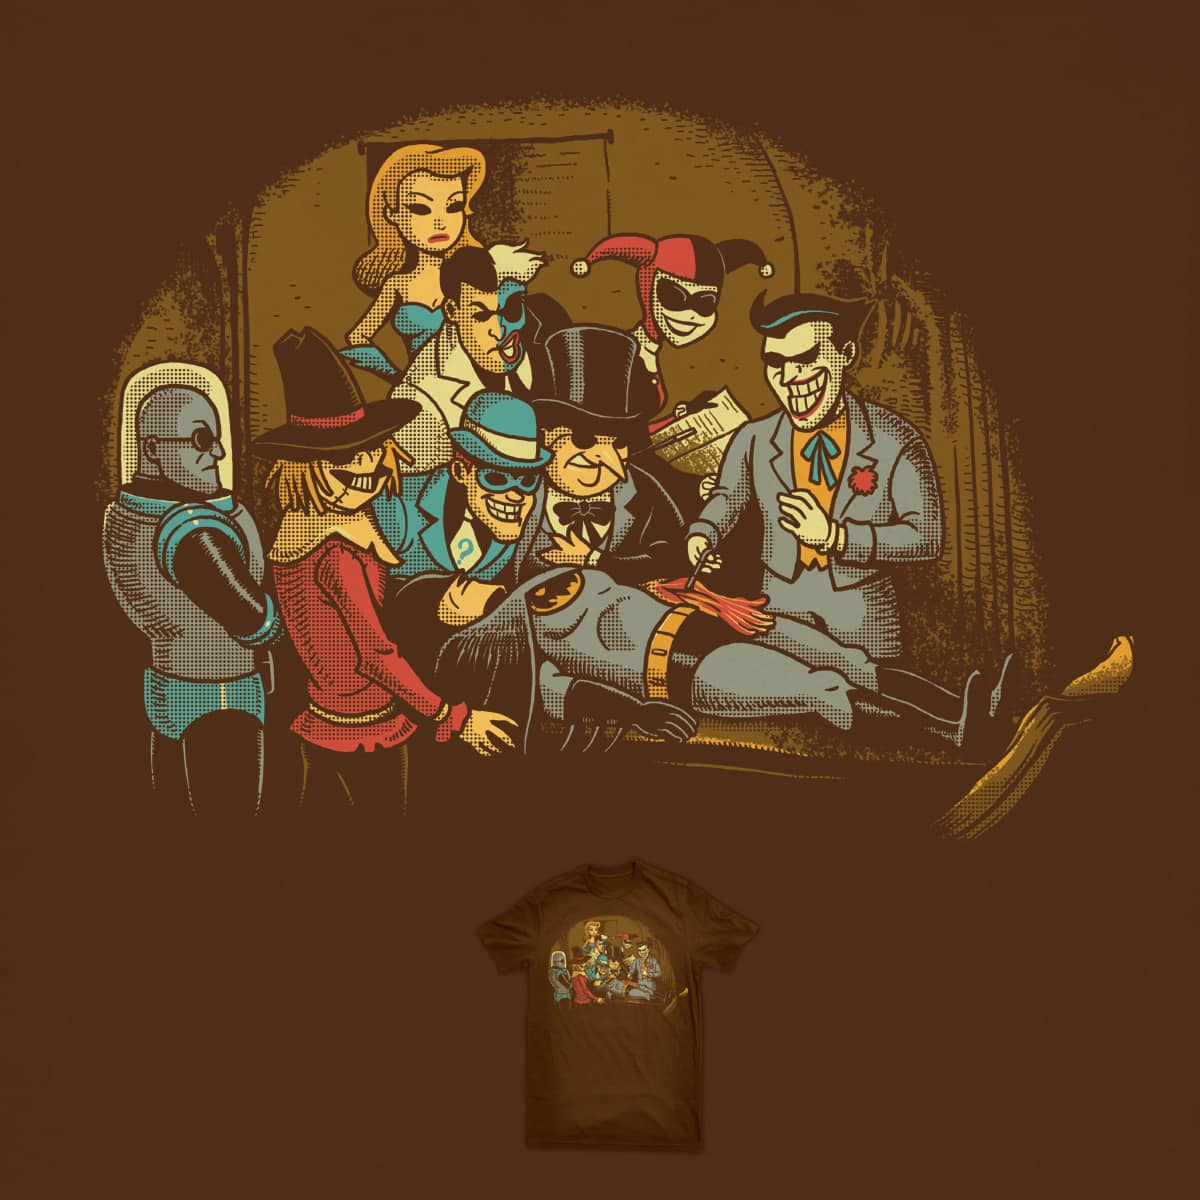 The Anato my Lecture of Dr. Joker by ben chen on Threadless